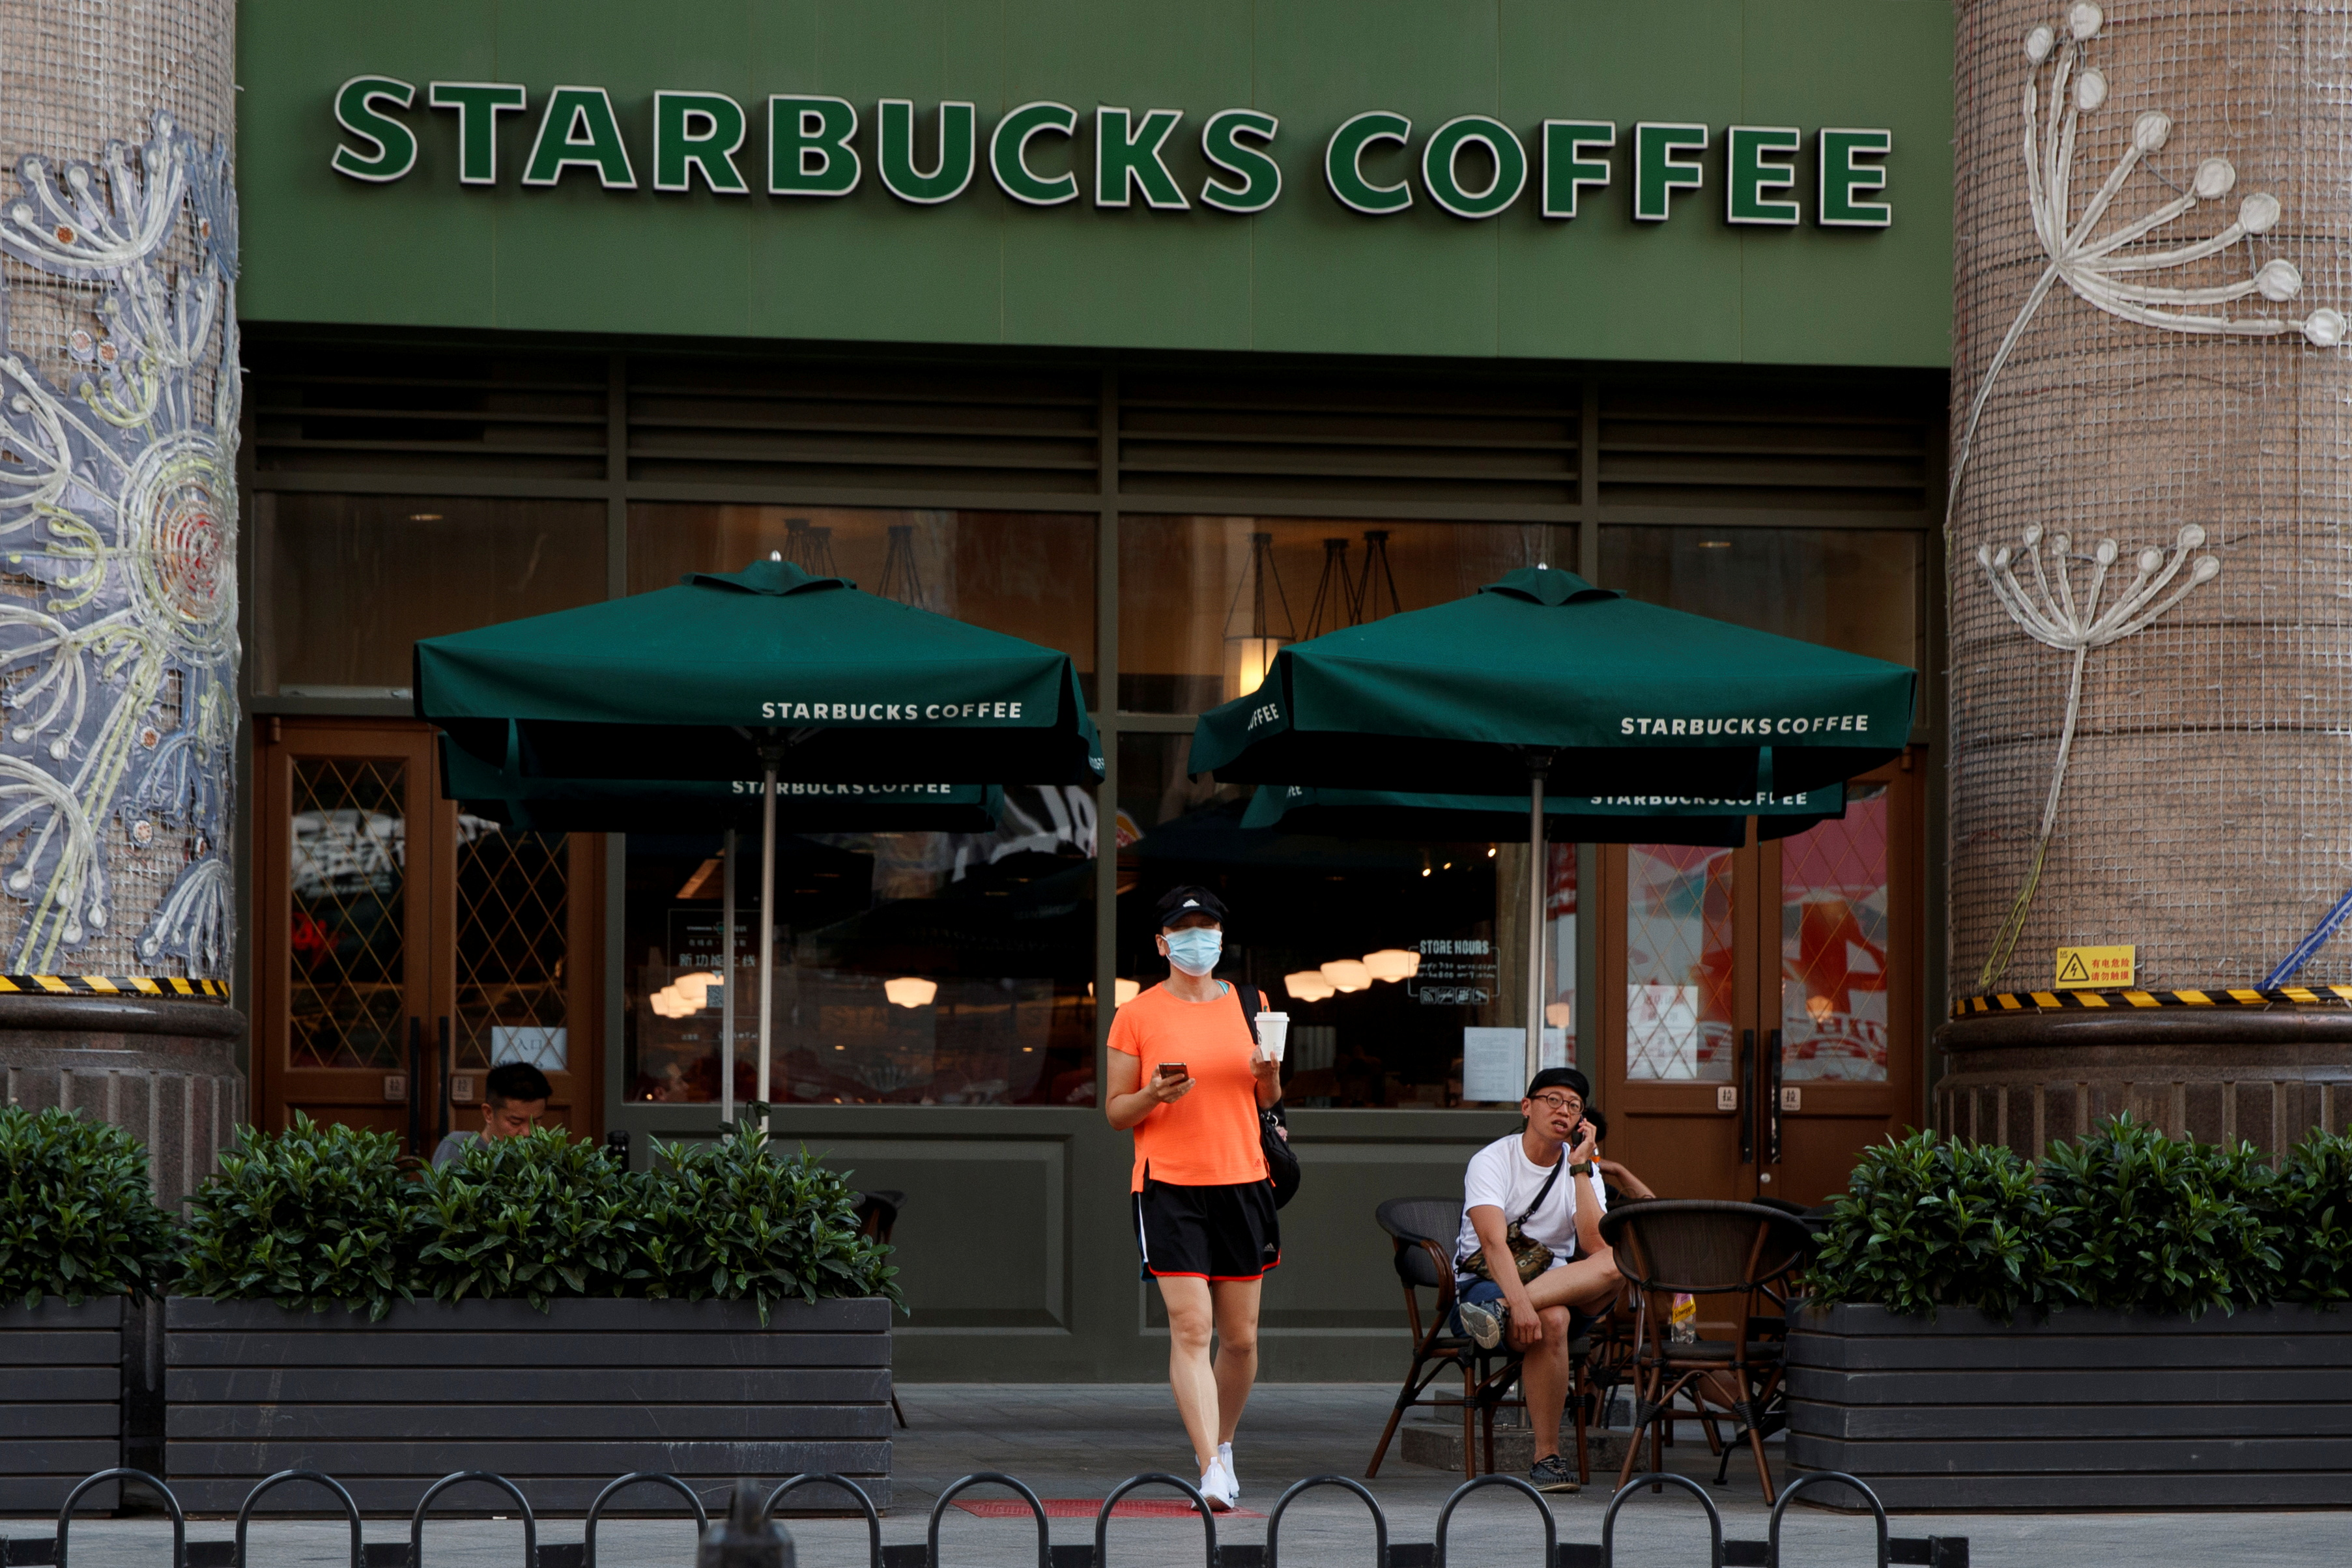 A woman leaves a cafe of Starbucks Coffee in Beijing, China, July 6, 2020.  REUTERS/Thomas Peter